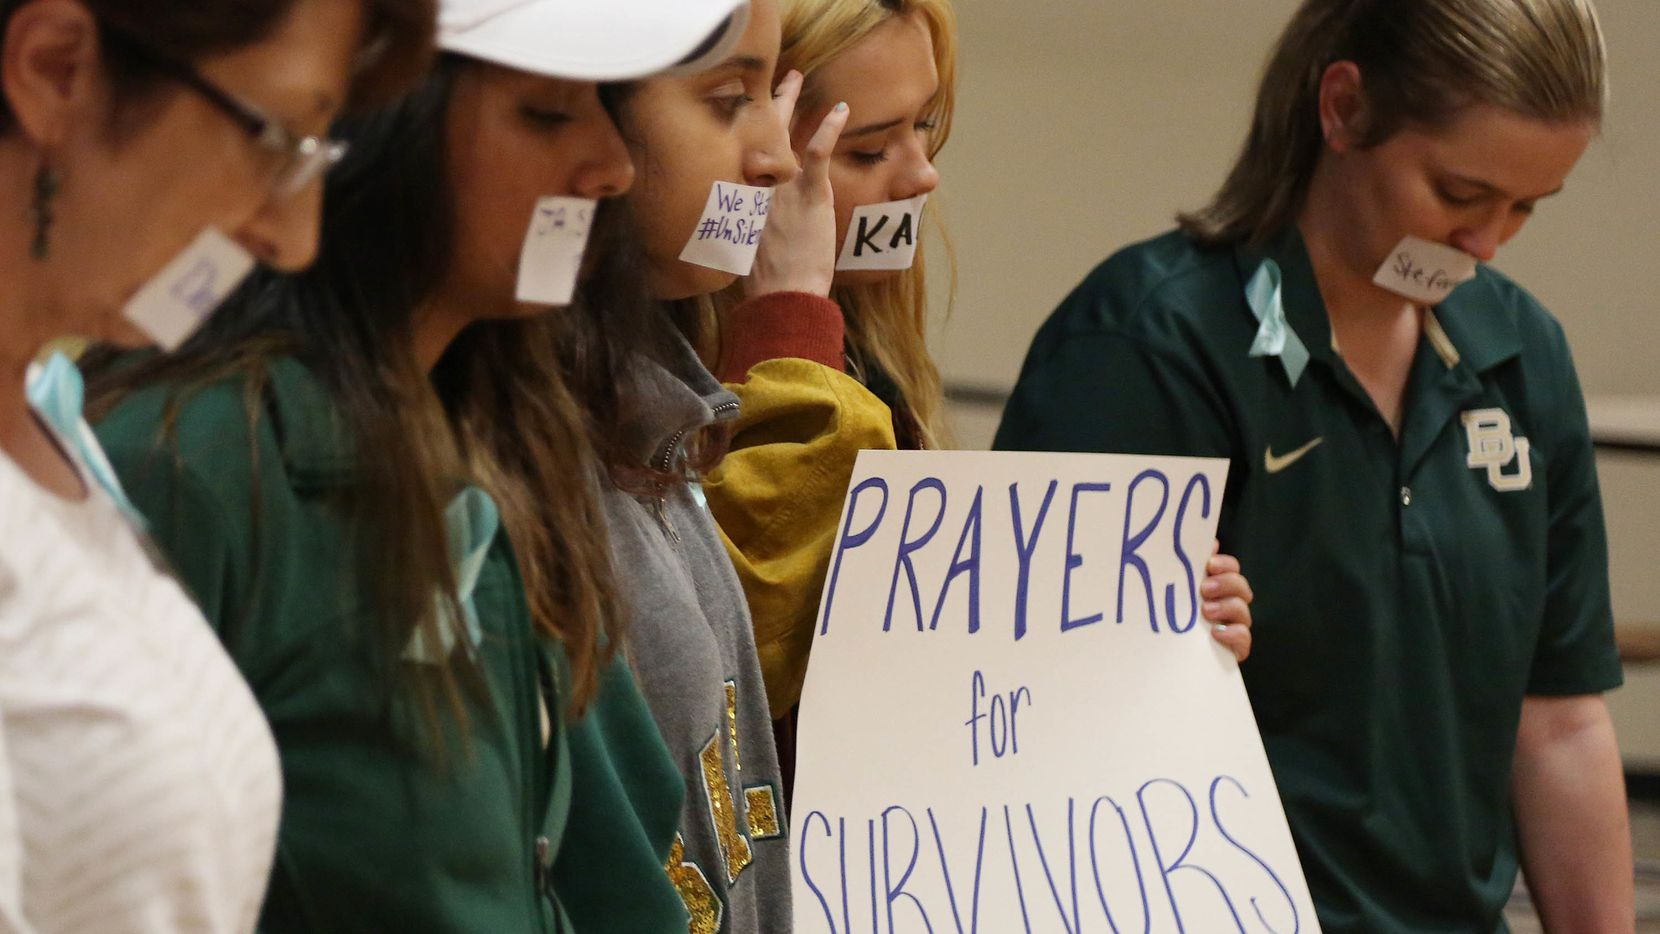 Current and former Baylor students hold a rally warning of sexually assaults June 3, 2016, in Waco.